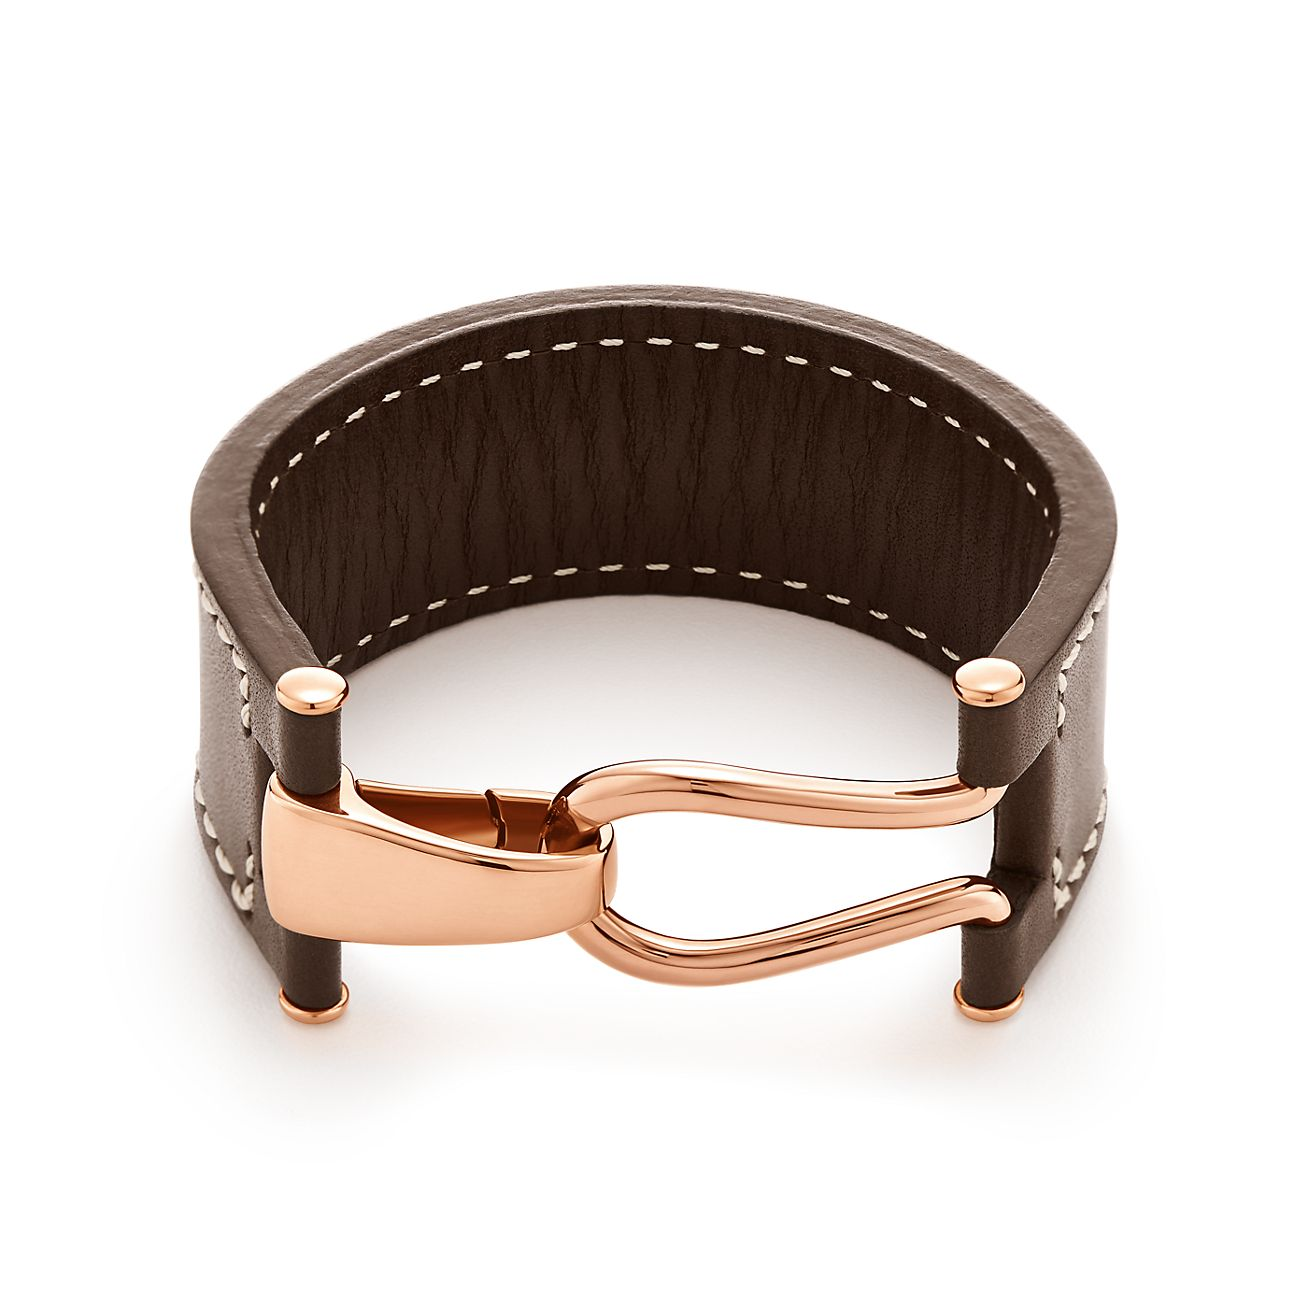 Paloma Picasso Knot wrap bracelet of 18k rose gold and leather, extra large Tiffany & Co.